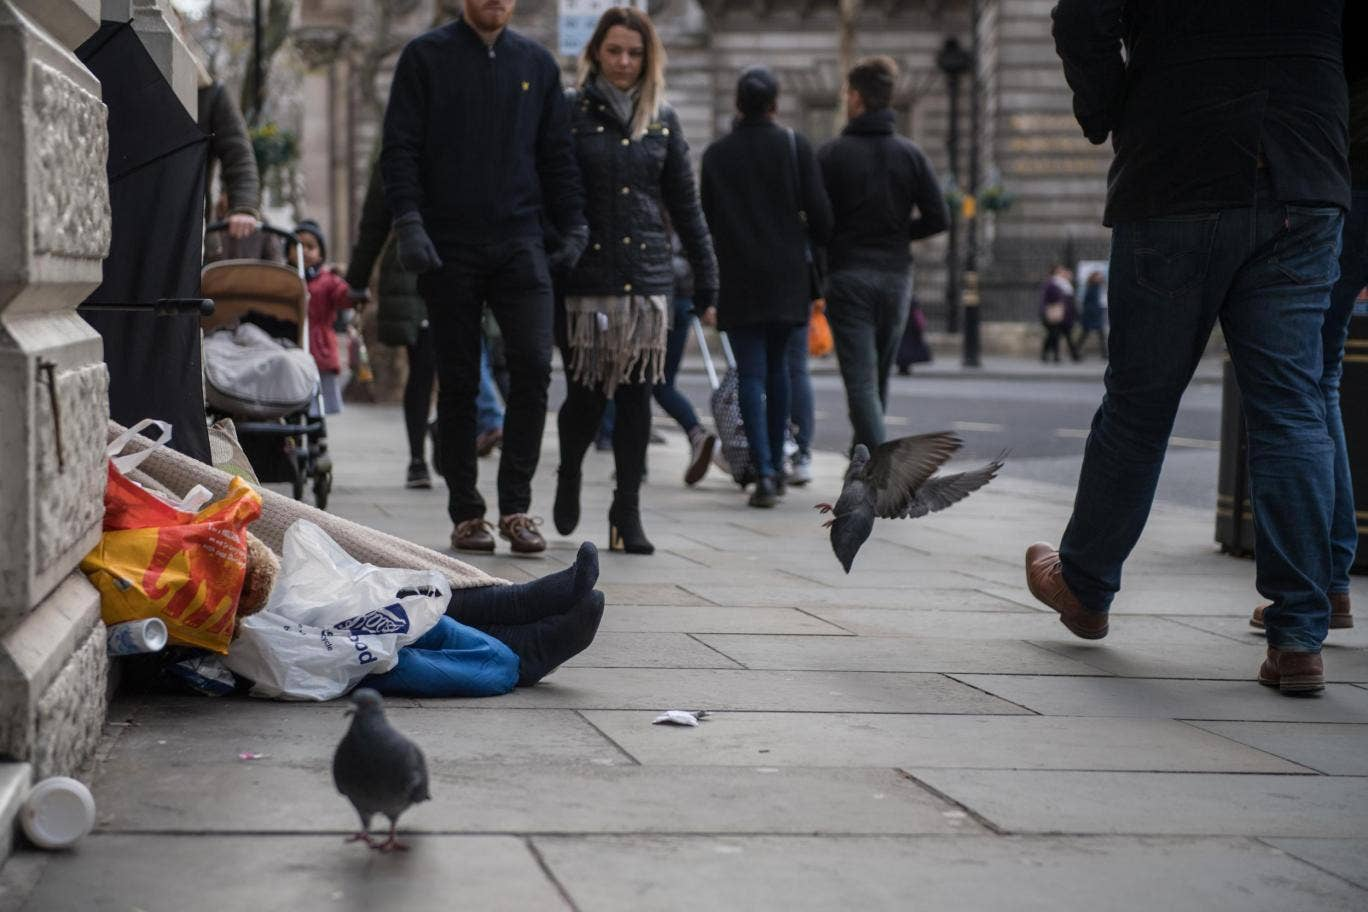 should we give homeless people money? | the independent